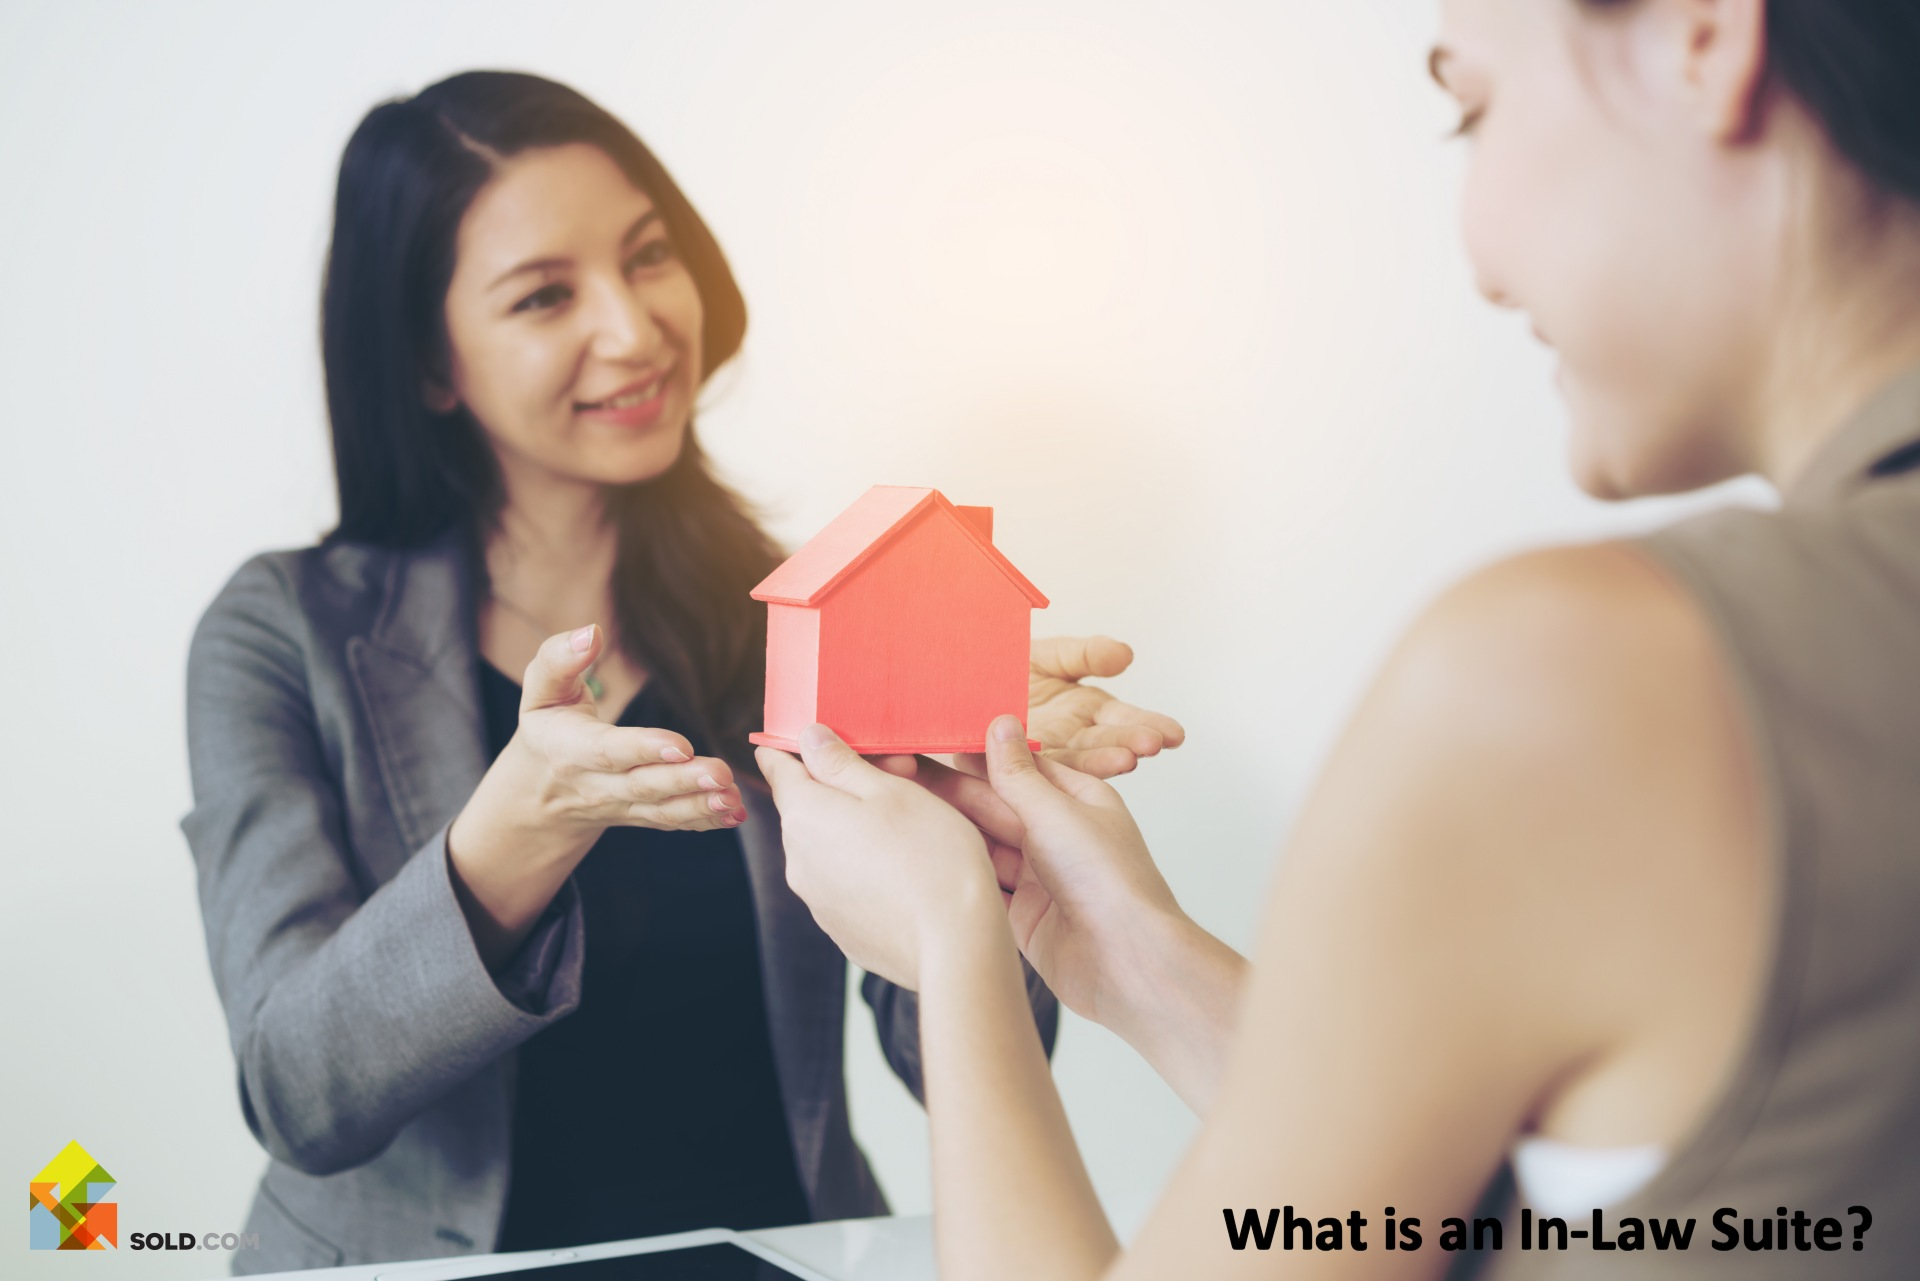 What is an In-Law Suite?